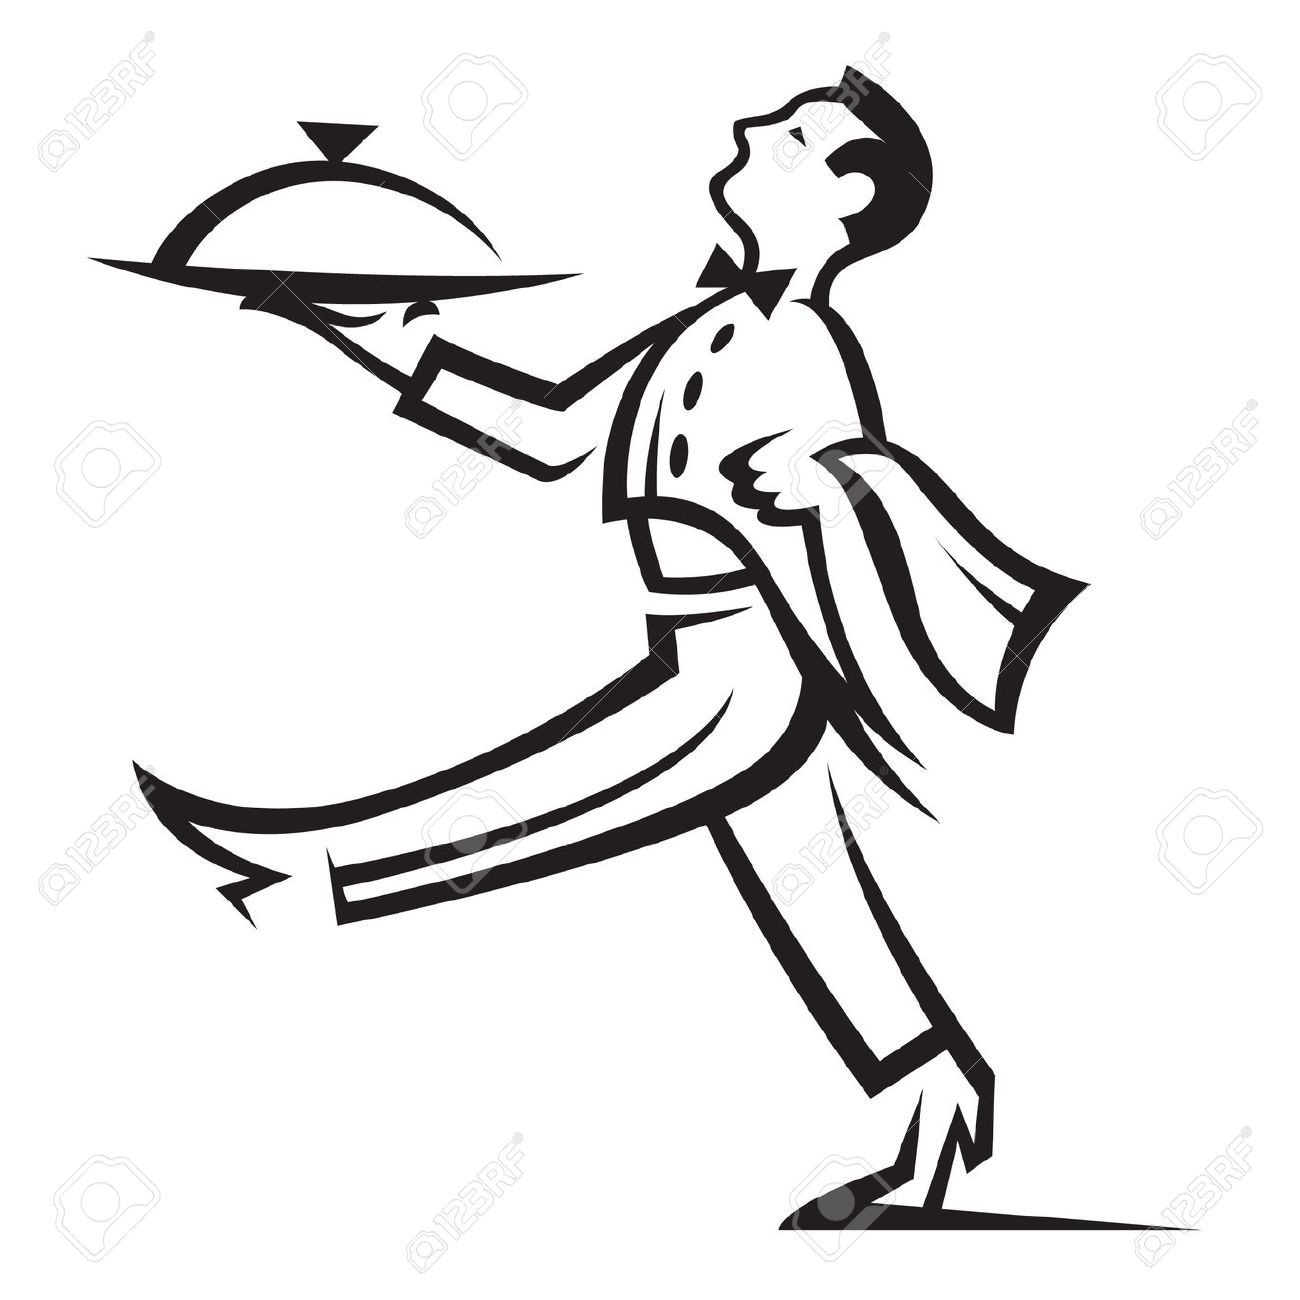 Restaurant butler tray pencil. Waitress clipart hotel indian waiter